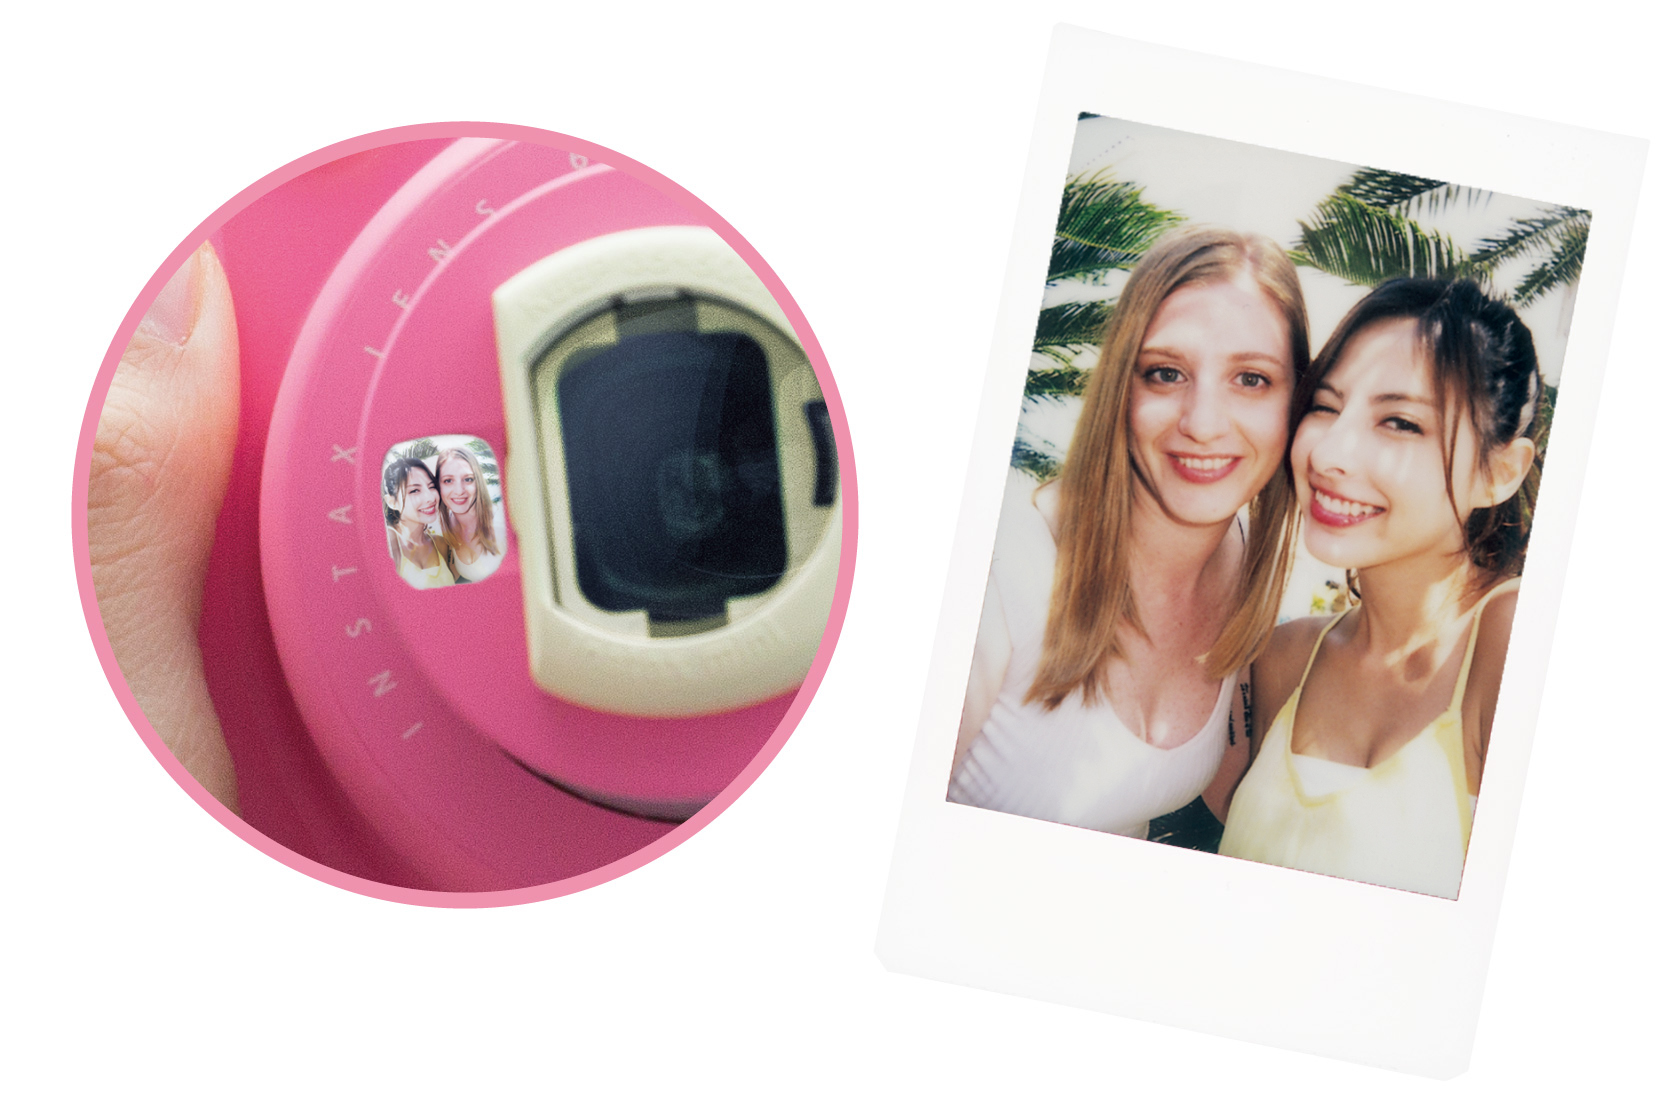 [photo] Close-up of front mirror of the Instax Mini 9 in pink